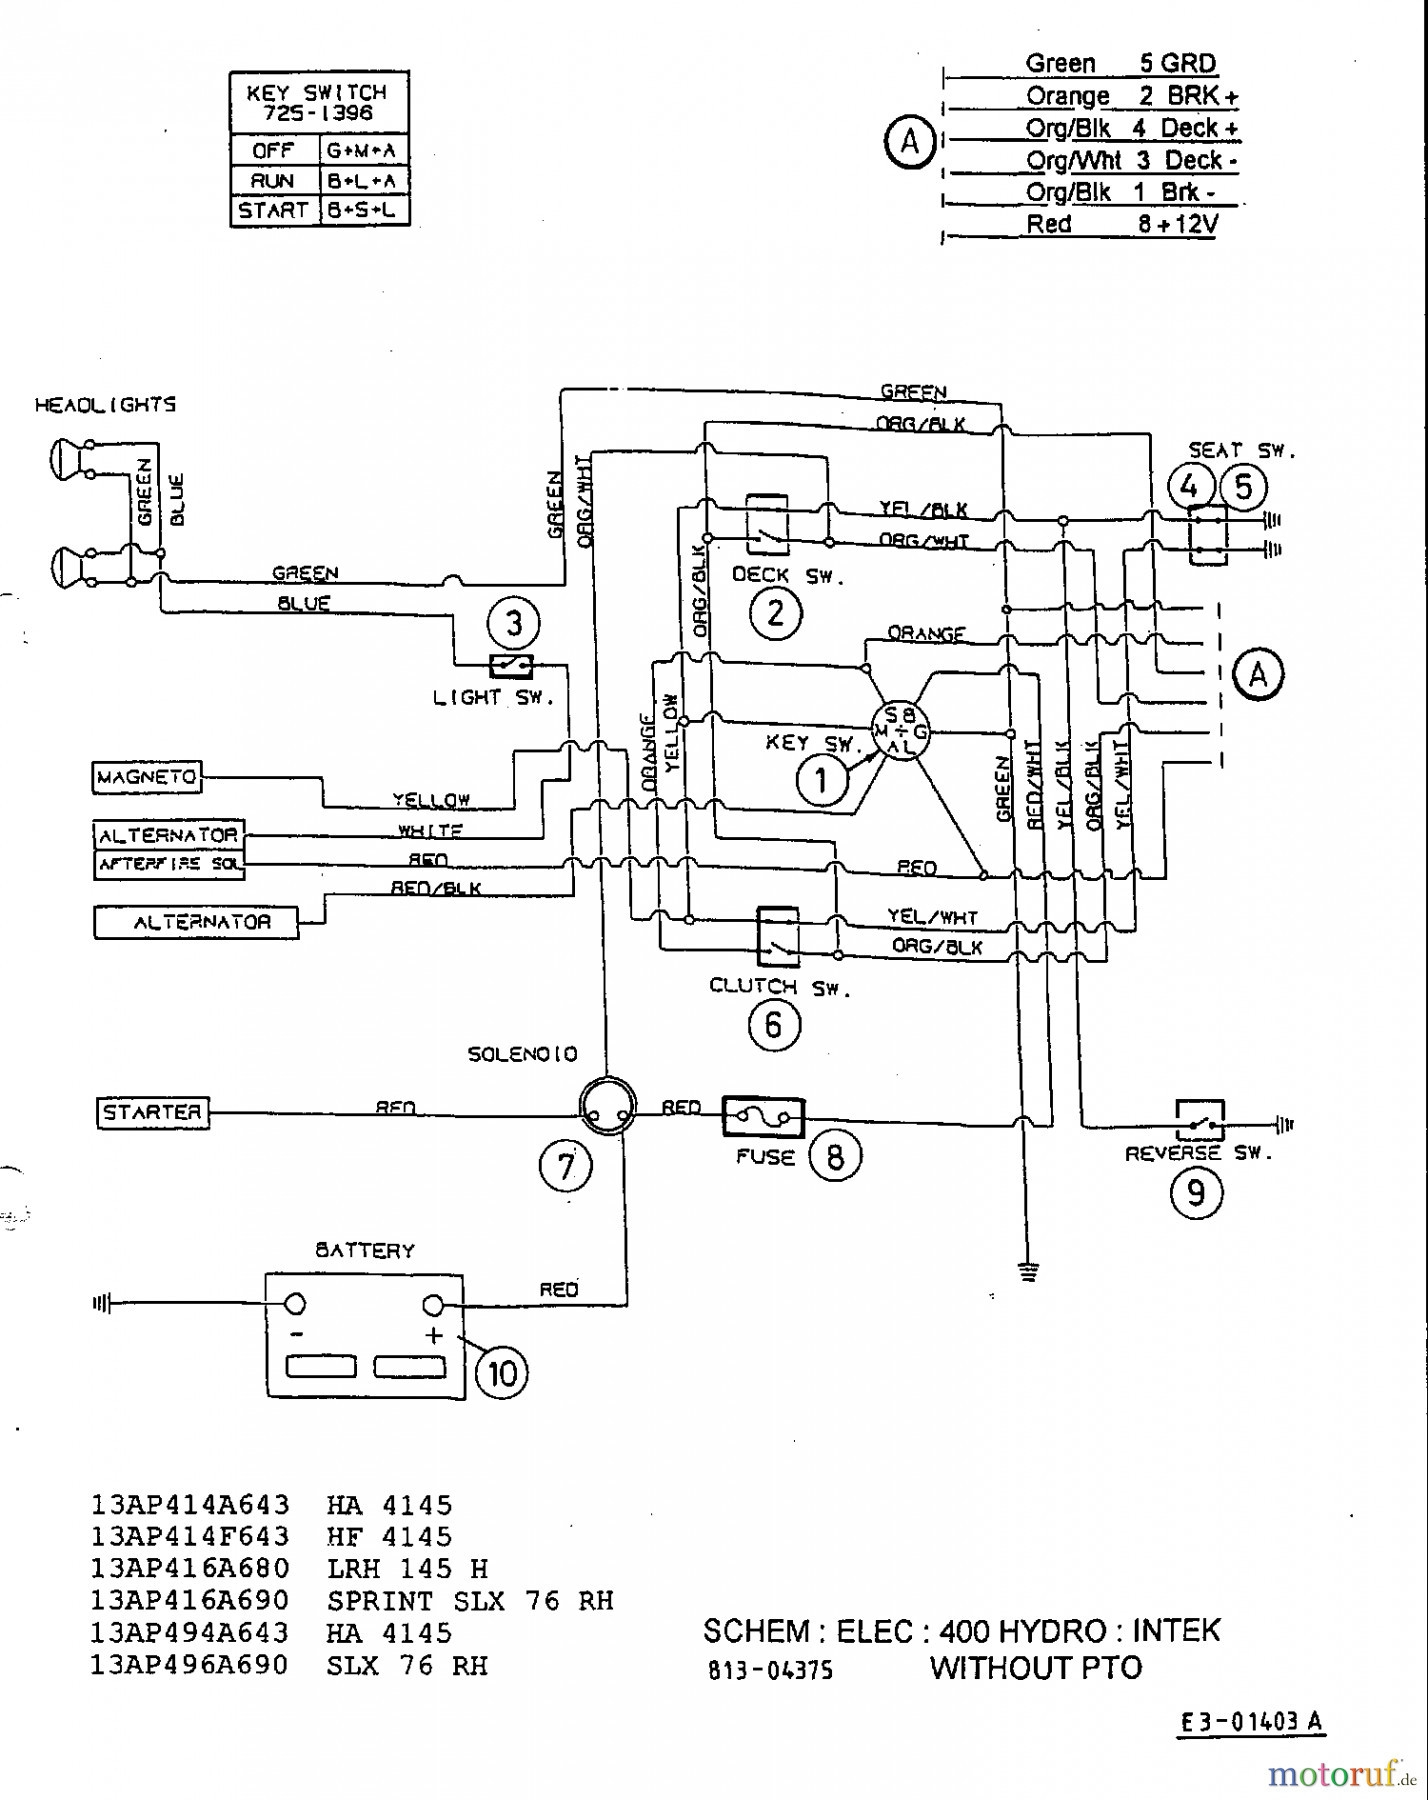 hight resolution of mtd lawn tractor schematics wiring diagram log wiring diagram mtd lawn tractor wiring schematic mtd lawn tractor